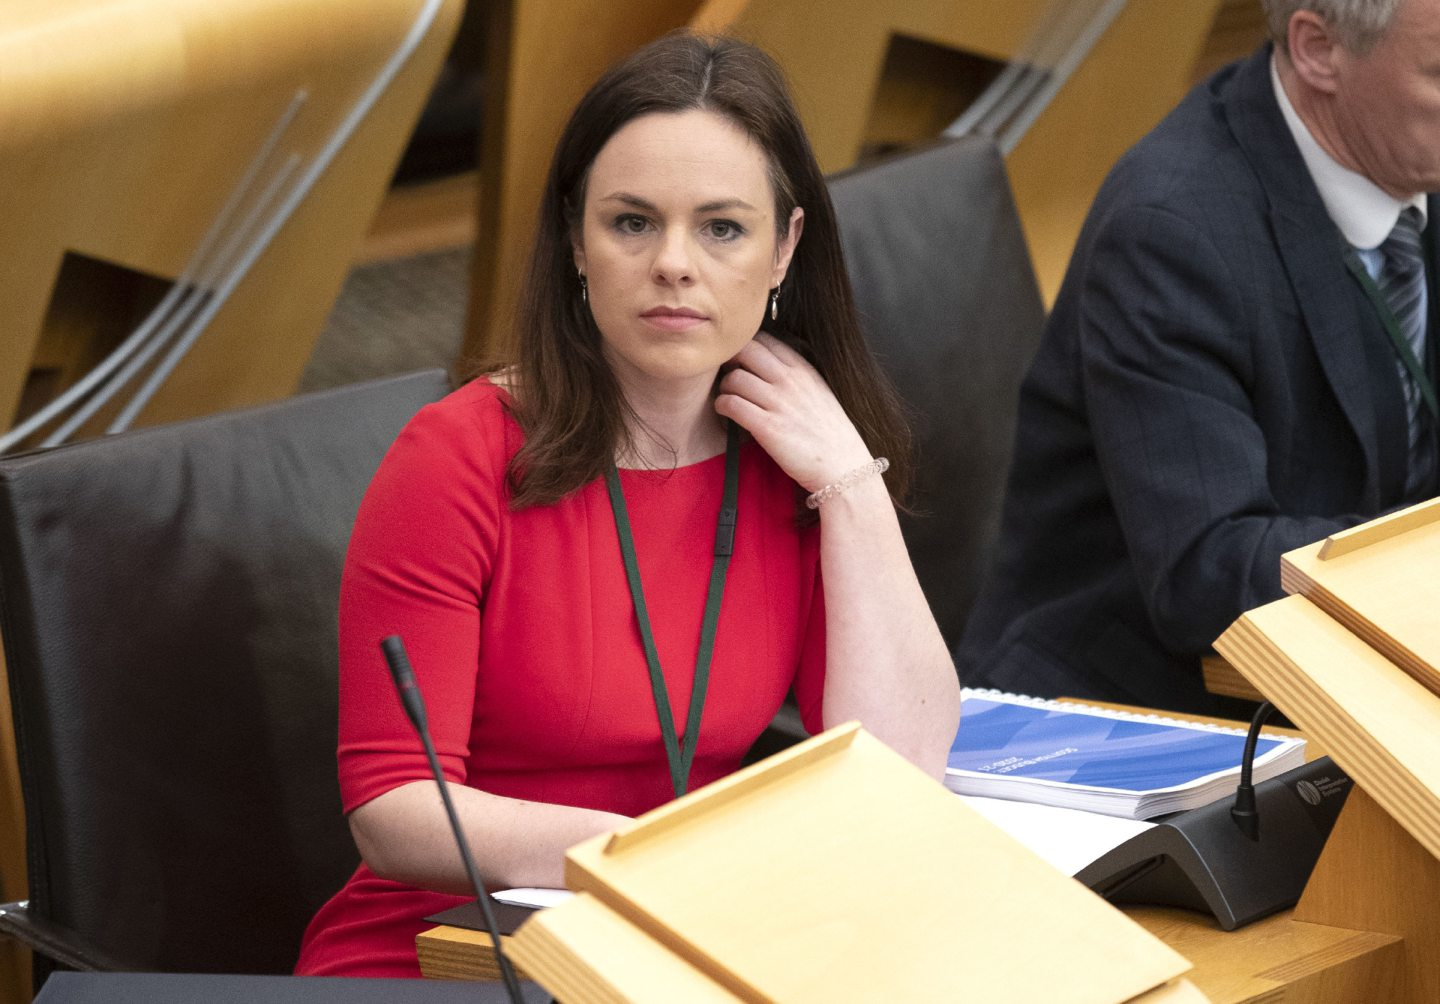 Kate Forbes on the way to deliver the Budget with First Minister Nicola Sturgeon.